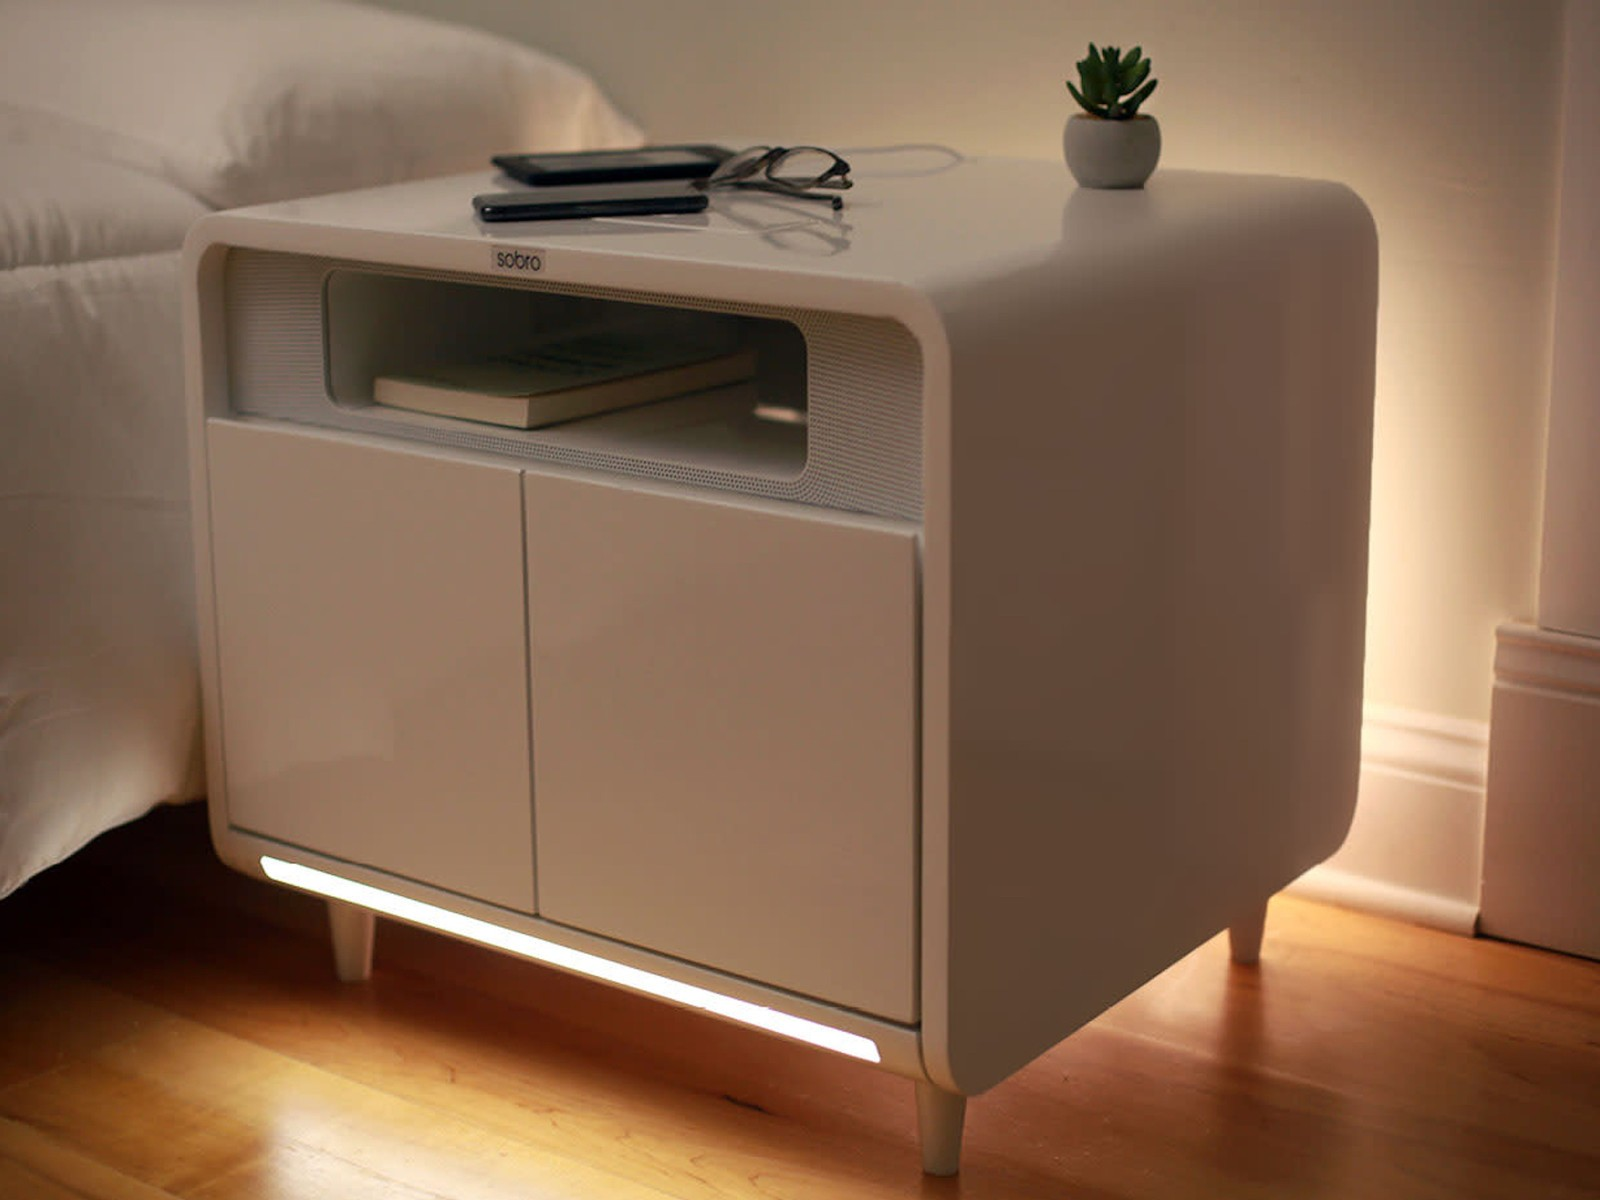 the sobro smart side table wants improve your bedside experience sombro hero room essentials storage accent confession night stand covered with clutter usually home water bottle